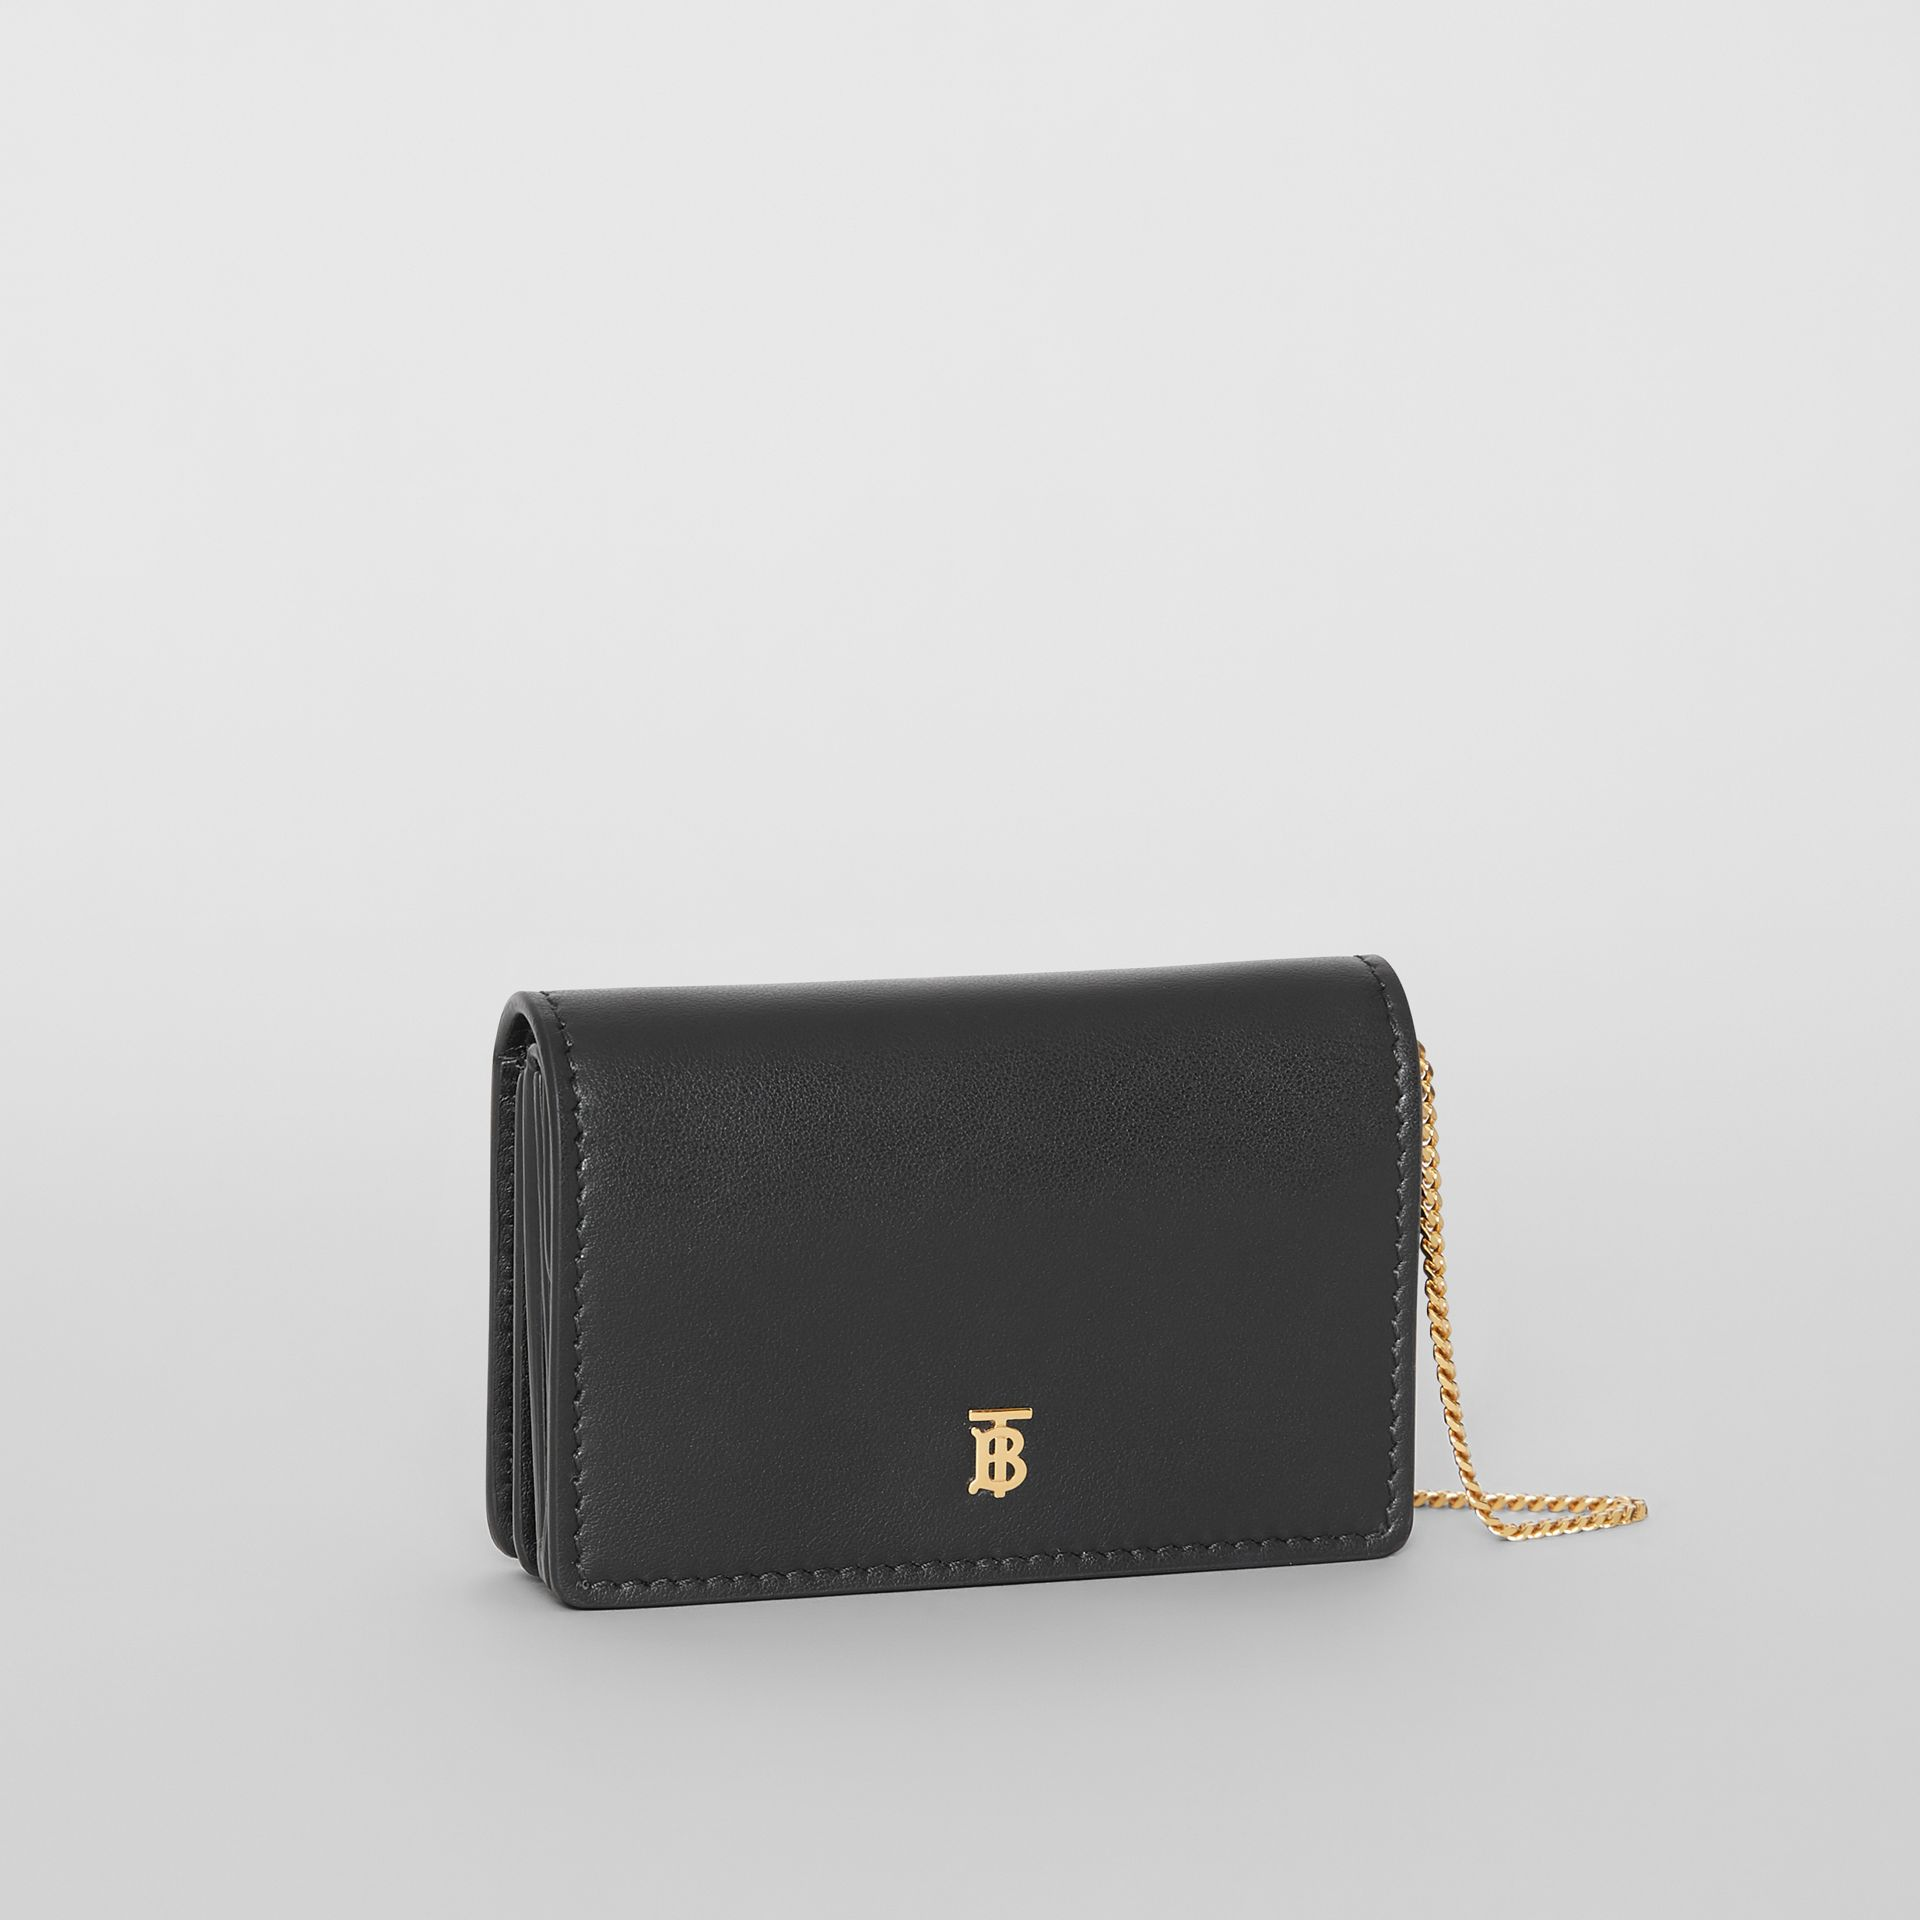 Leather Card Case with Detachable Strap in Black - Women | Burberry United Kingdom - gallery image 6